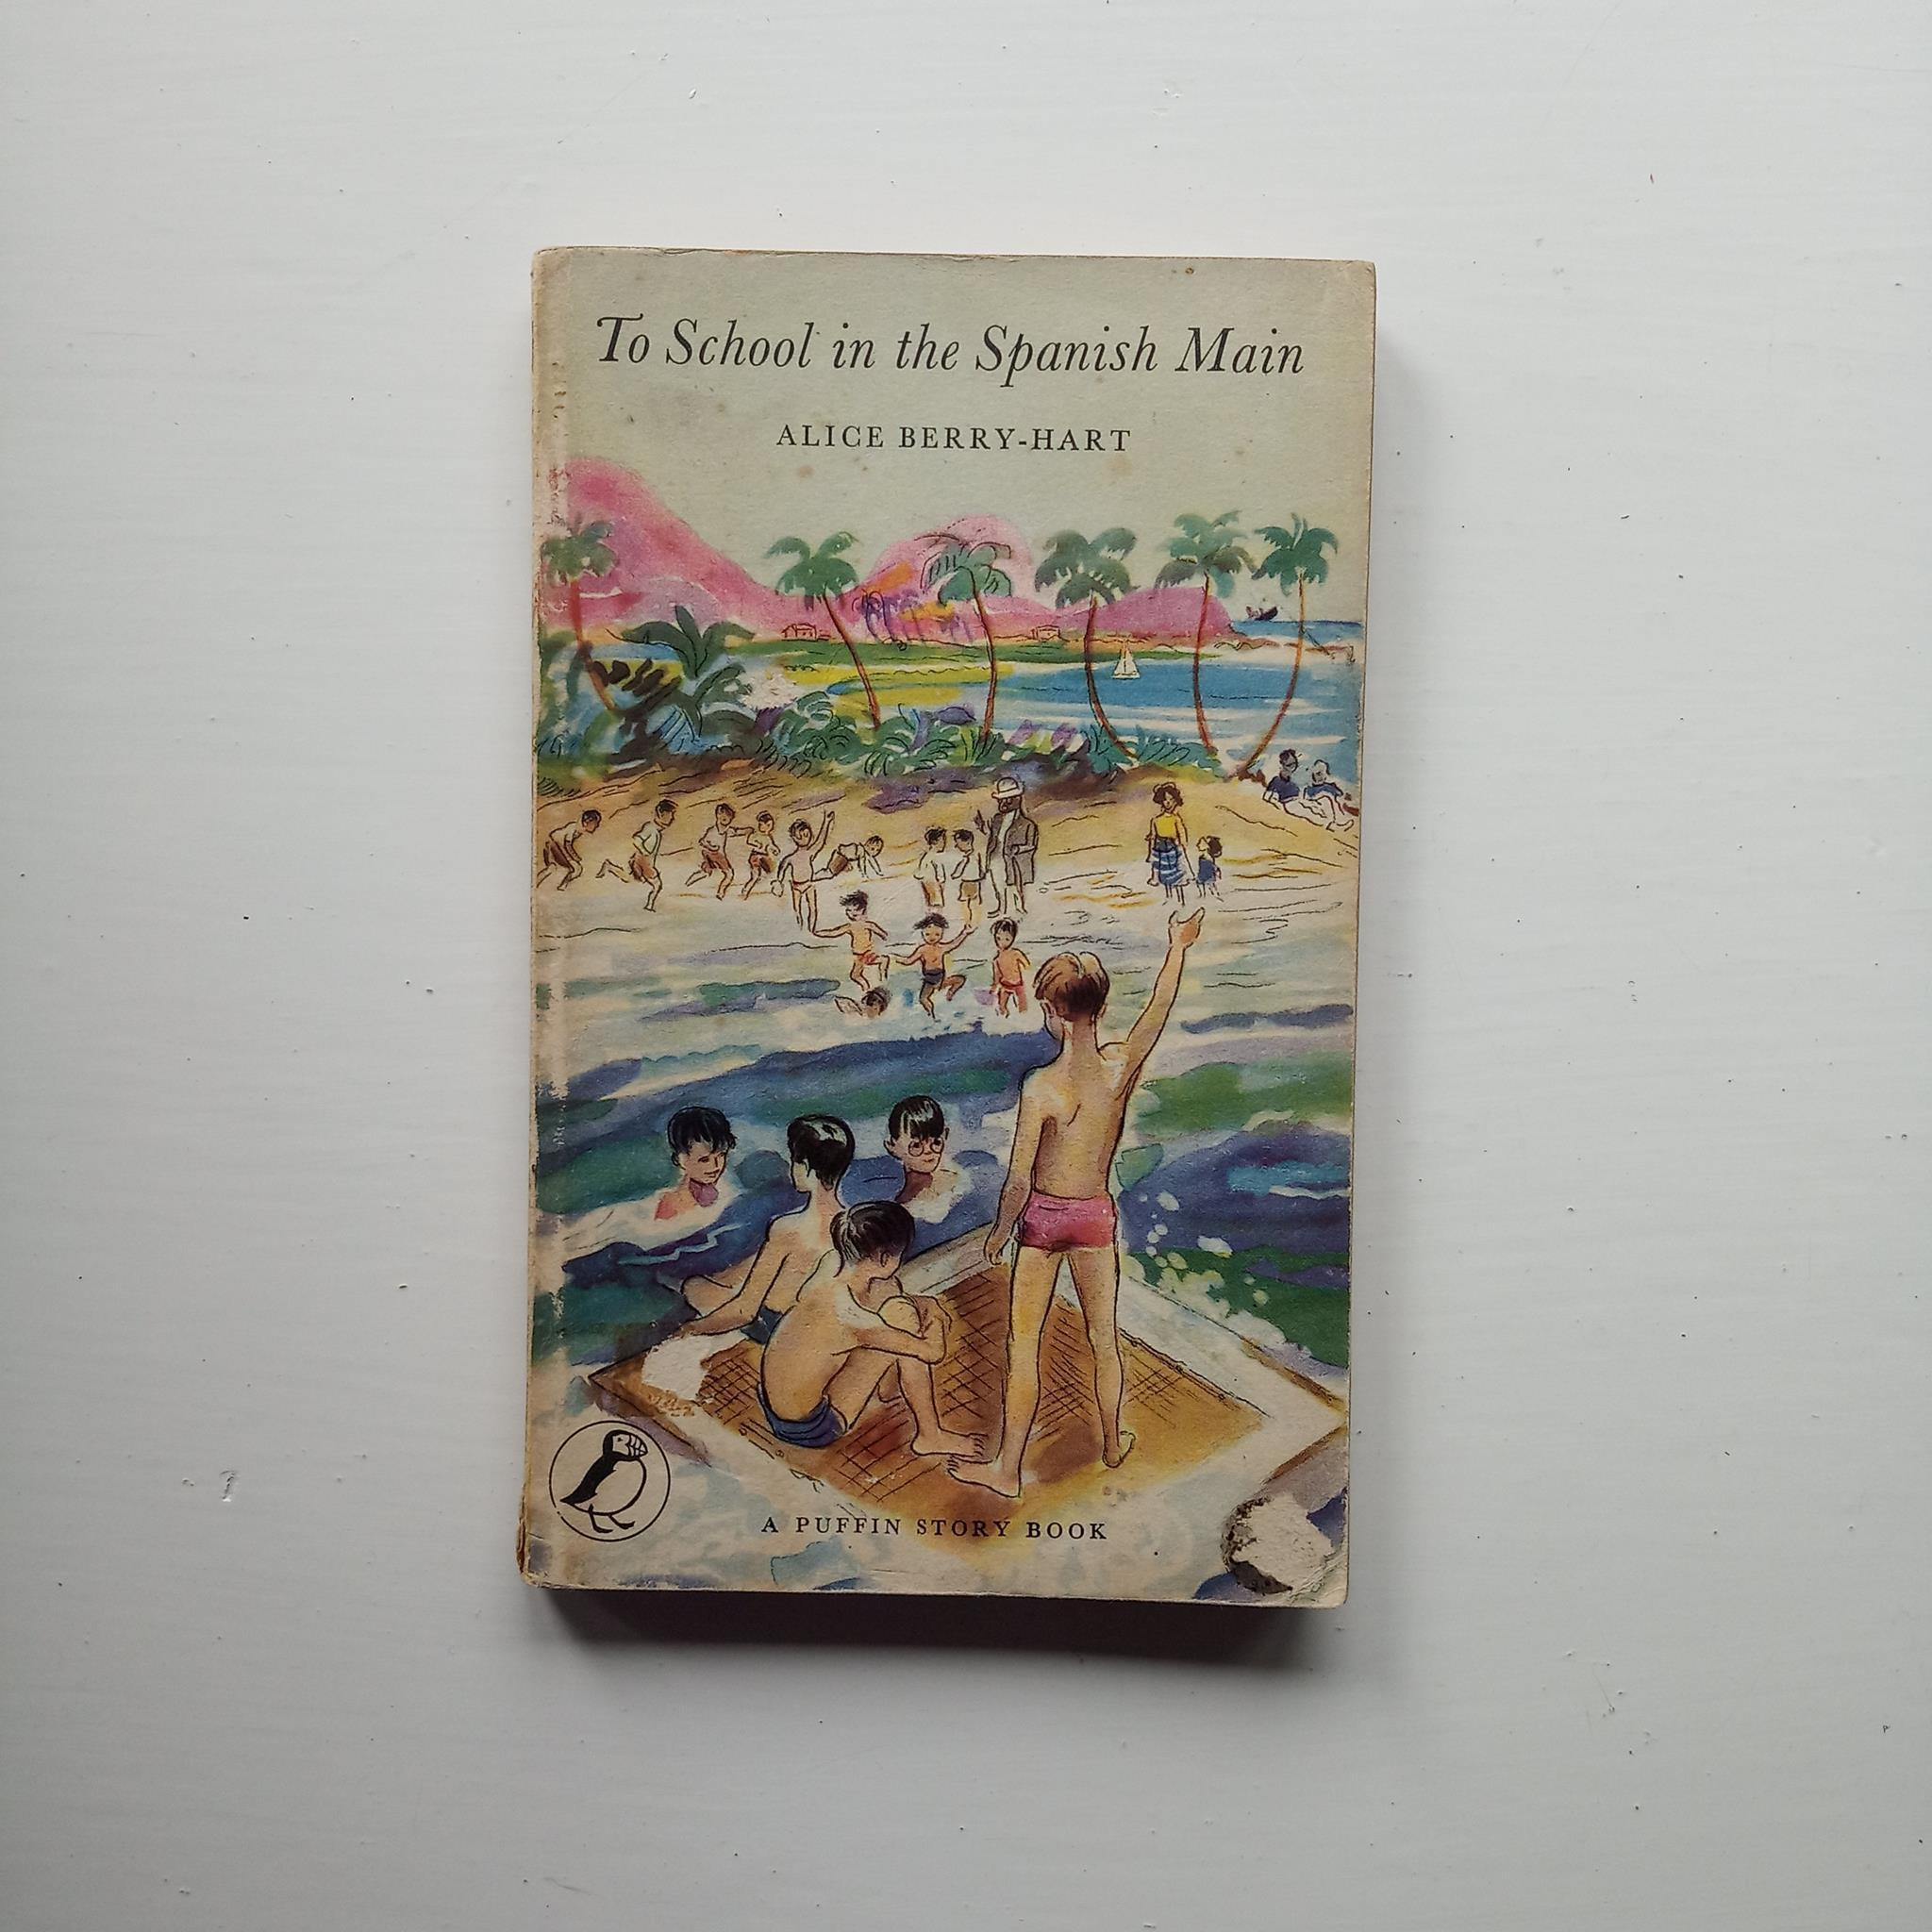 To School in the Spanish Main by Alice Berry-Hart